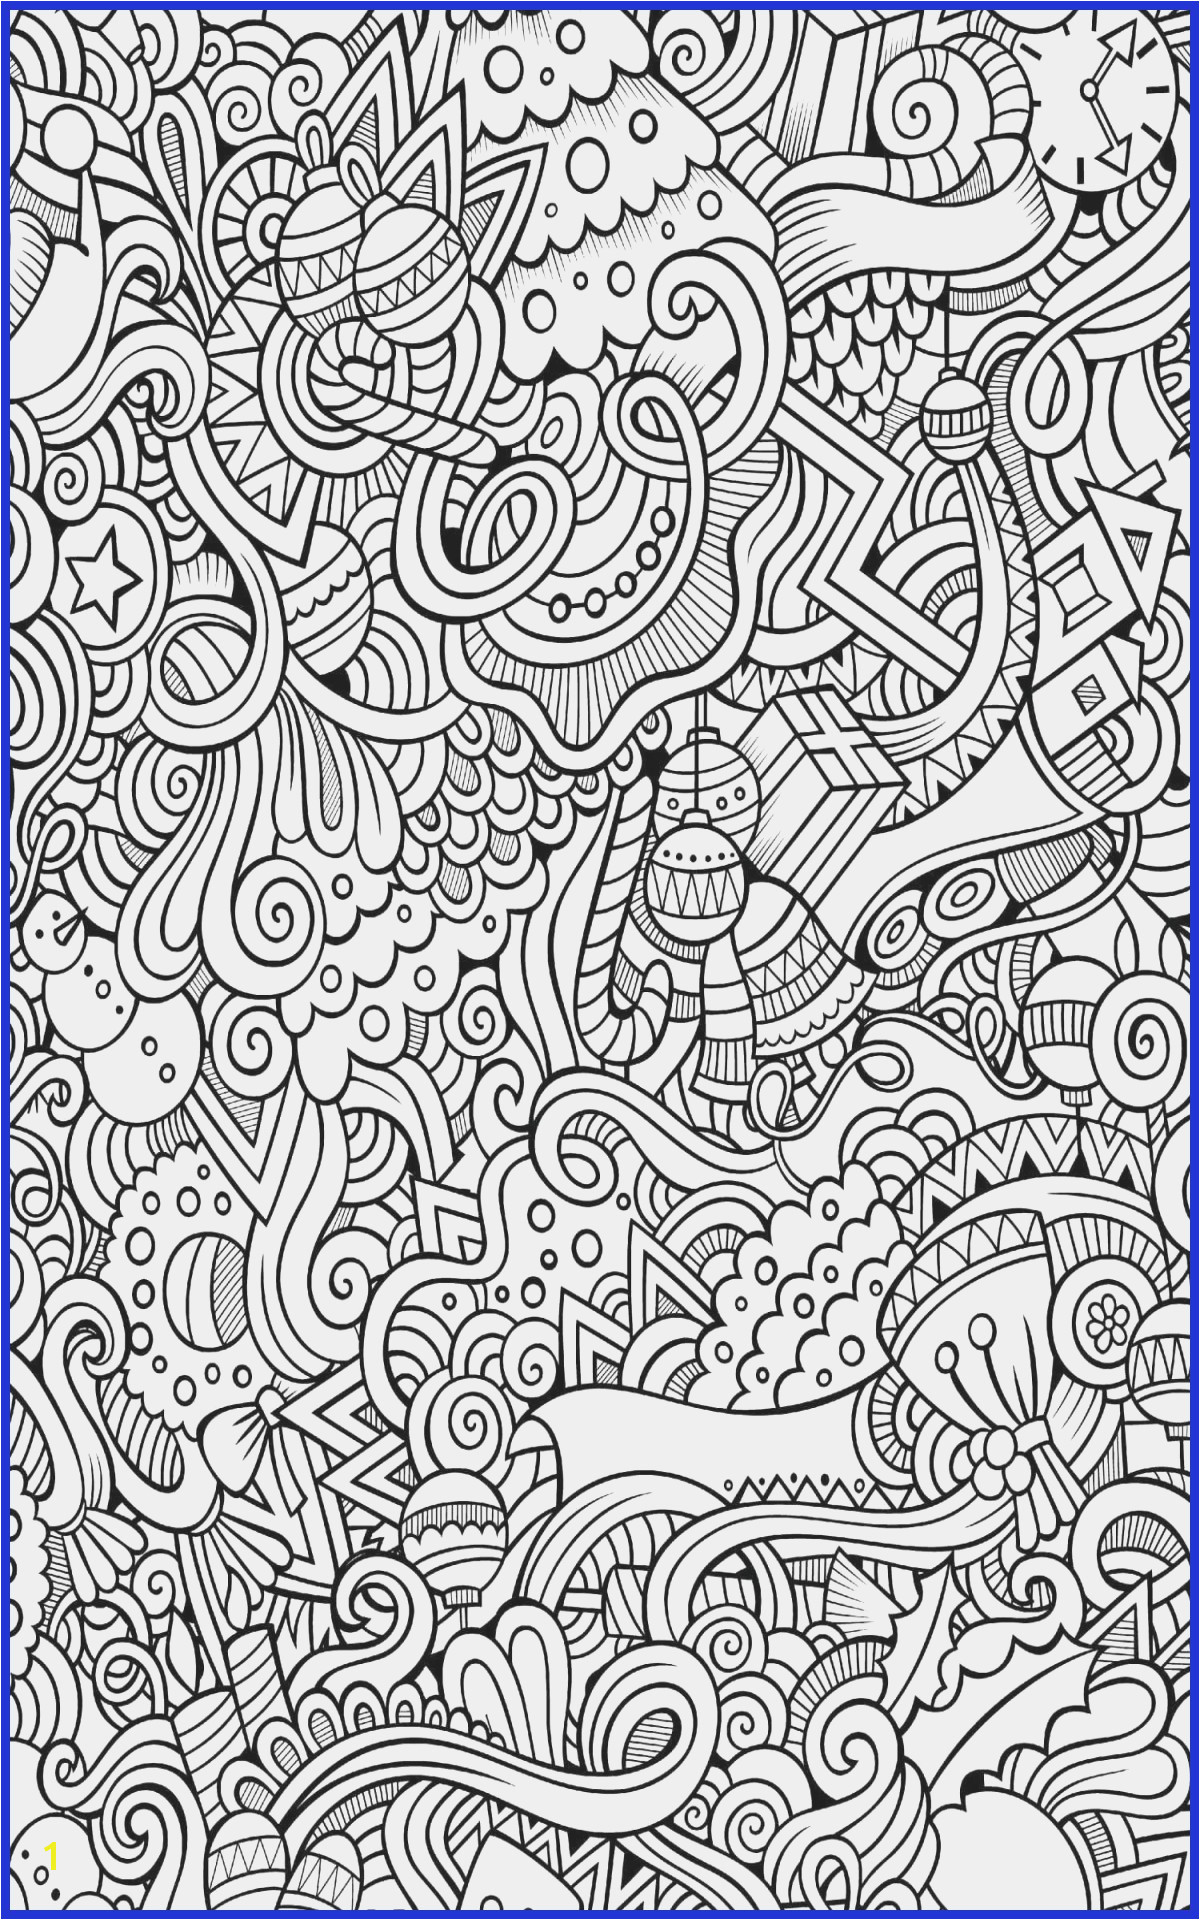 Printable Coloring Pages for Adults Fresh 14 Awesome Free Printable Coloring Pages for Adults Advanced